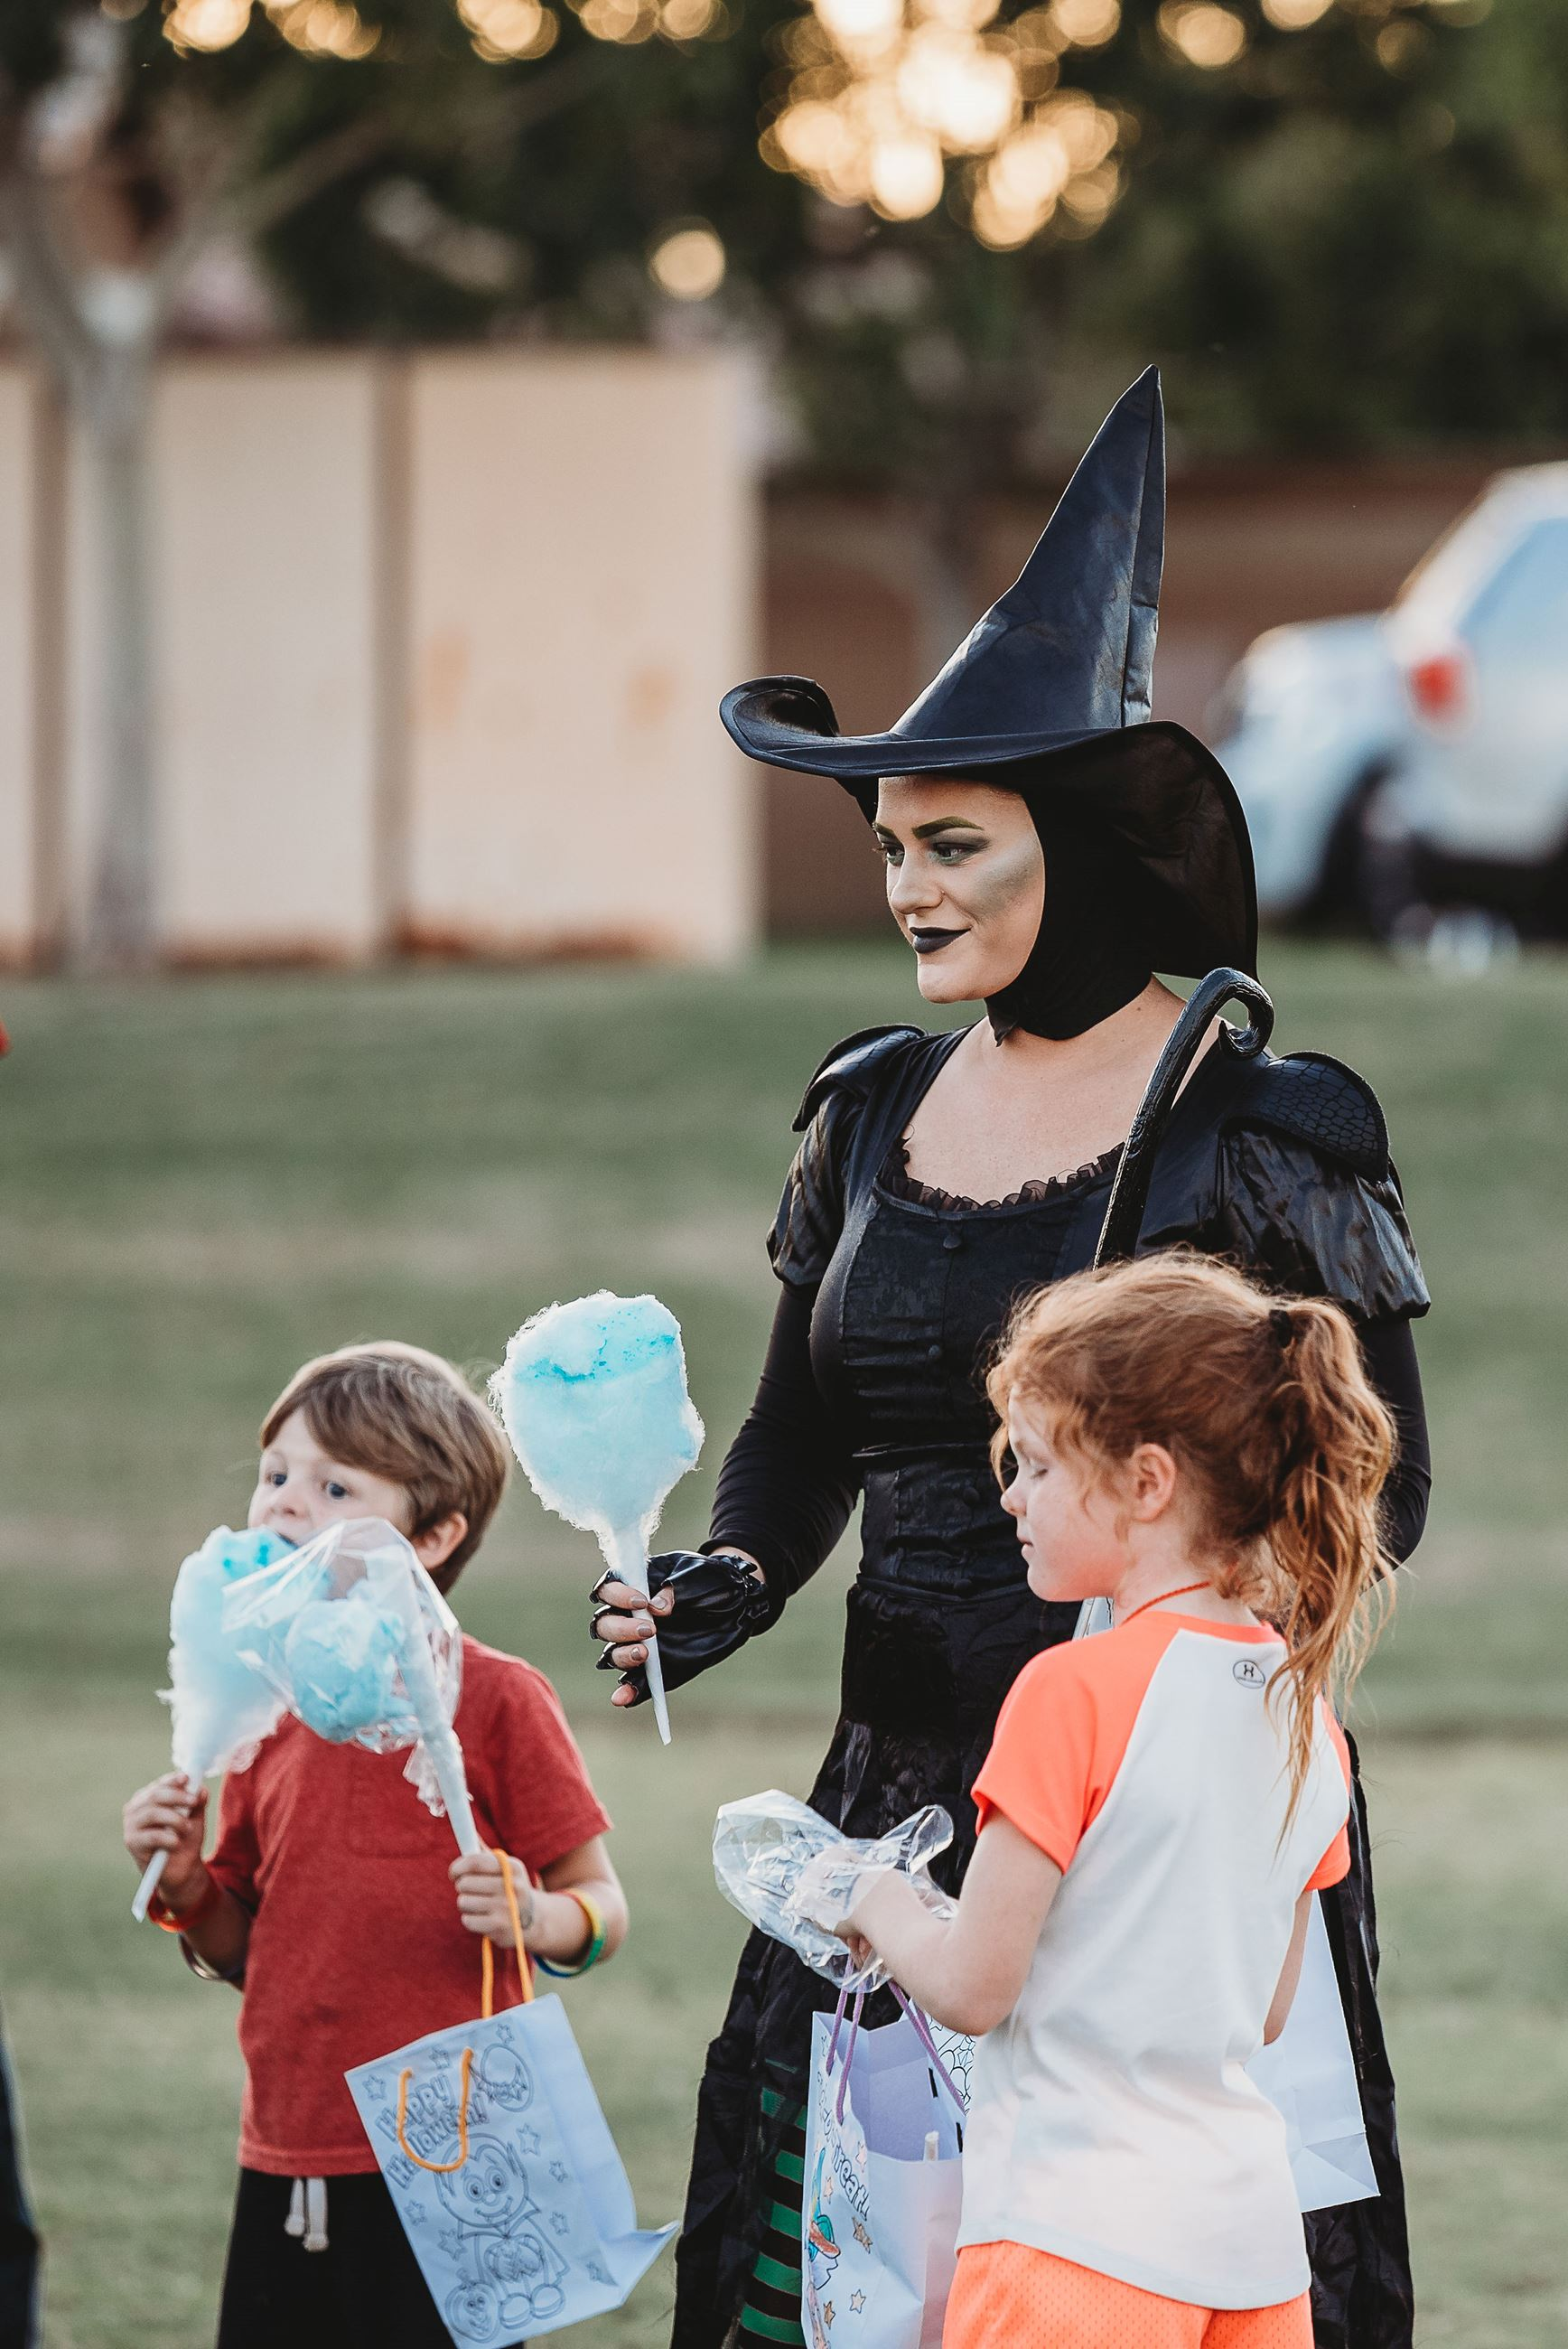 Mother Dressed as a Witch with Her Kids, All Eating Blue Cotton Candy